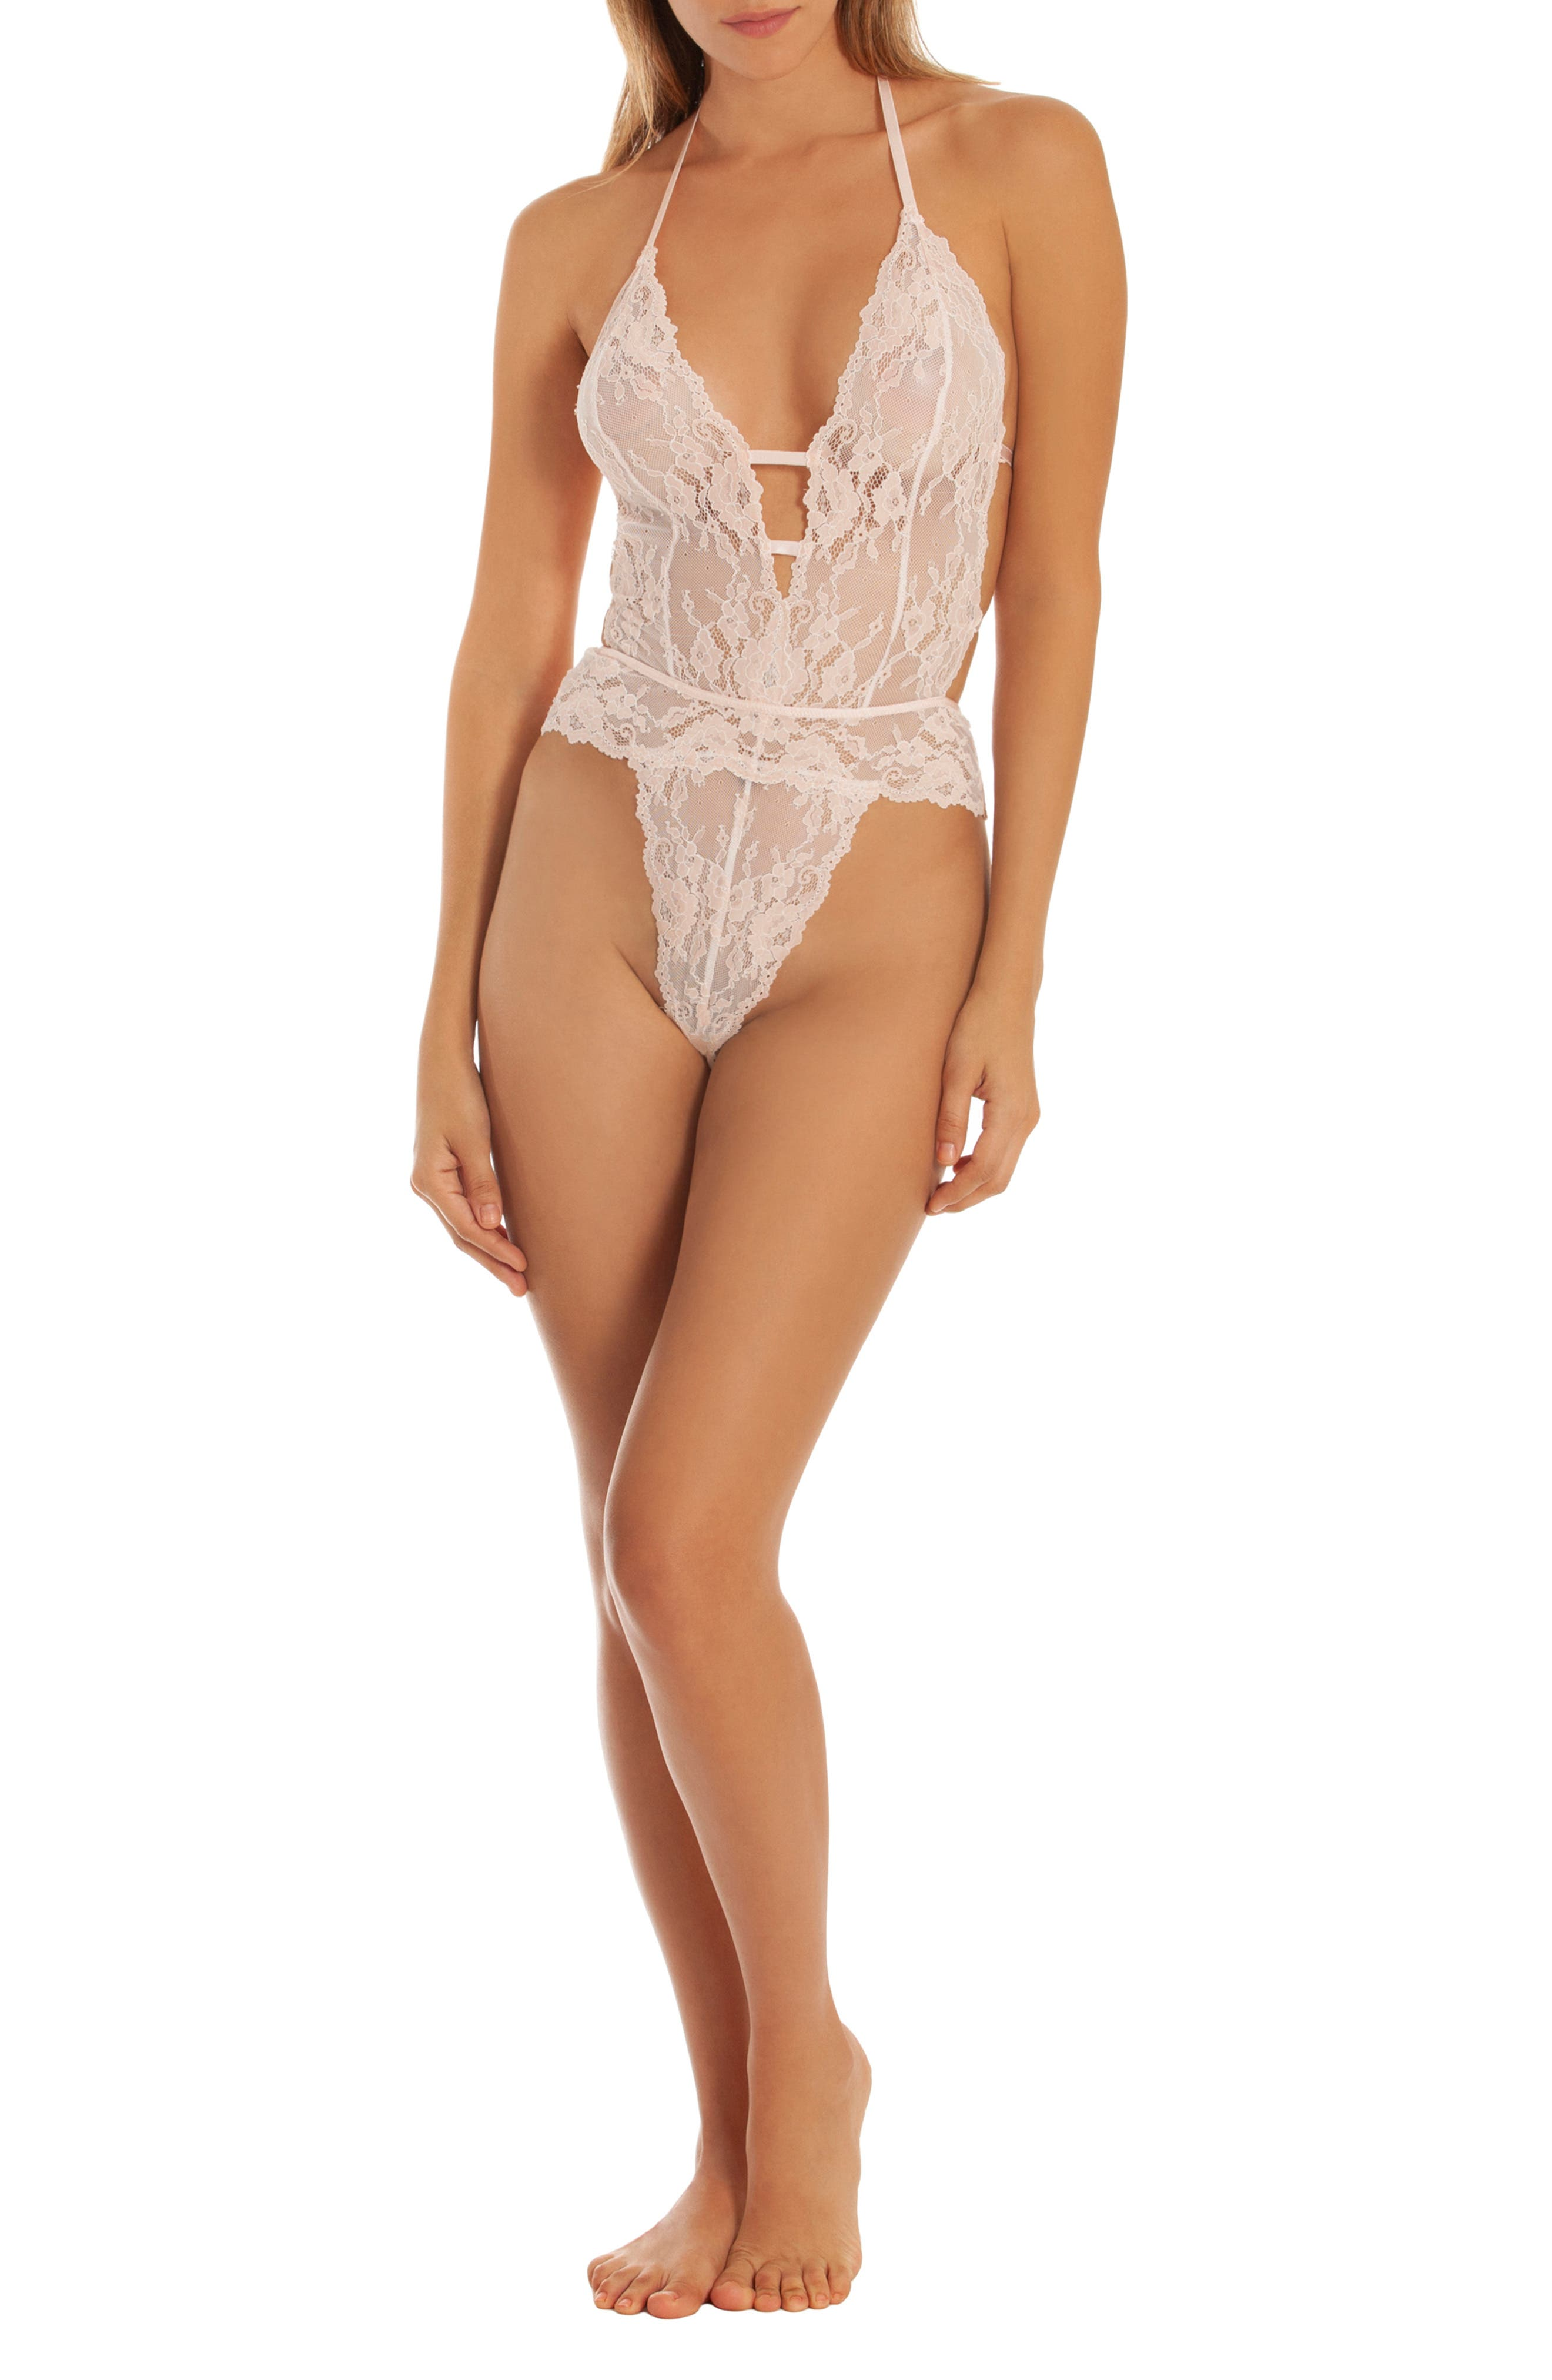 IN BLOOM BY JONQUIL,                             Lace Thong Teddy,                             Alternate thumbnail 3, color,                             ALABASTER PINK